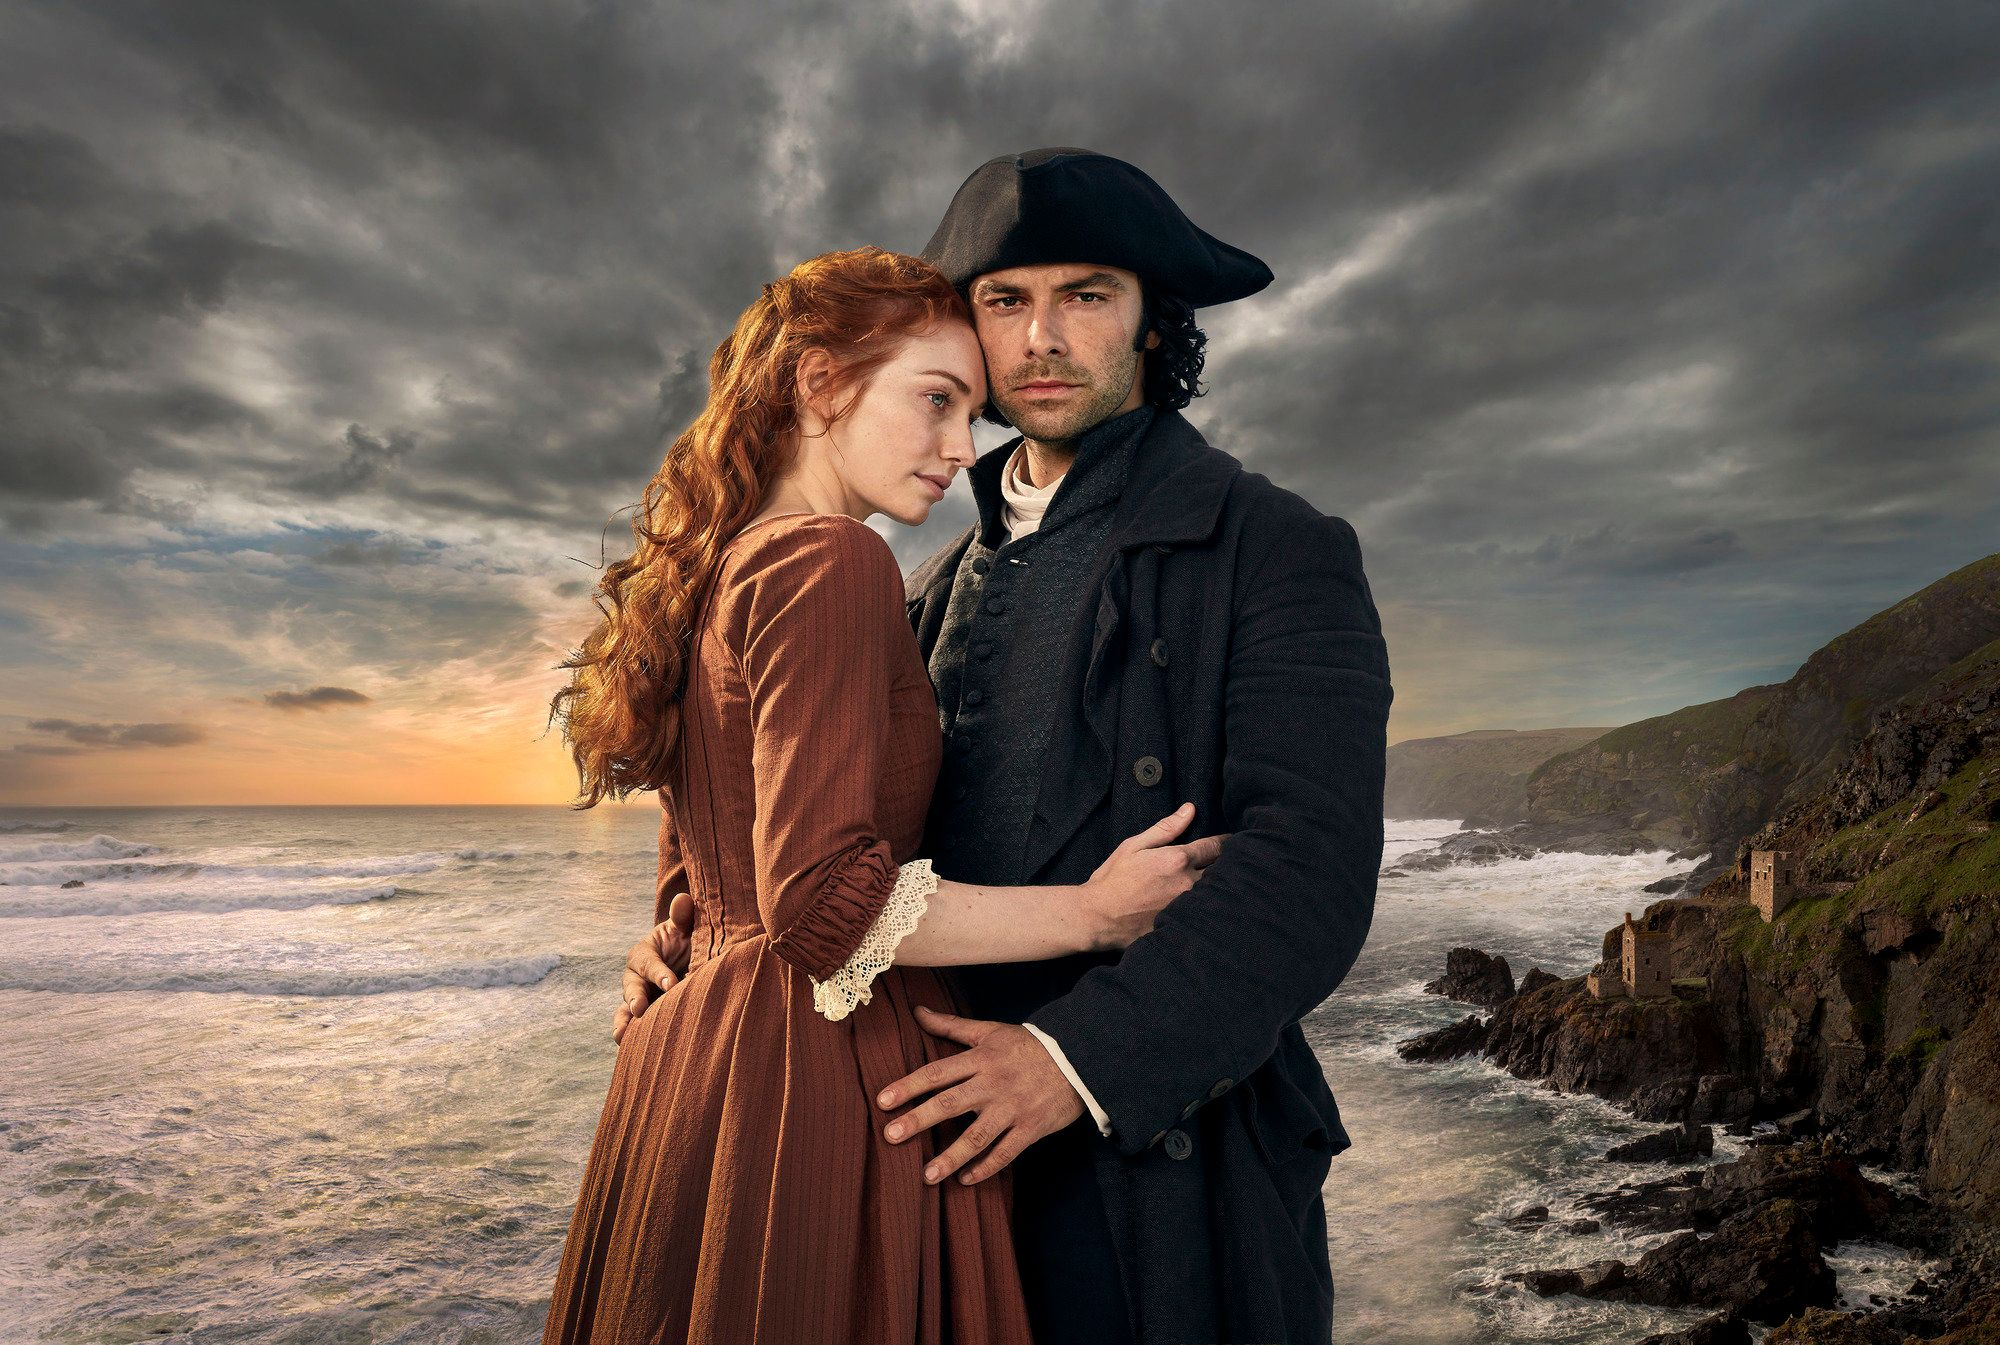 'Poldark' Serie 3 Release Date Confirmed, And It's Very, Very